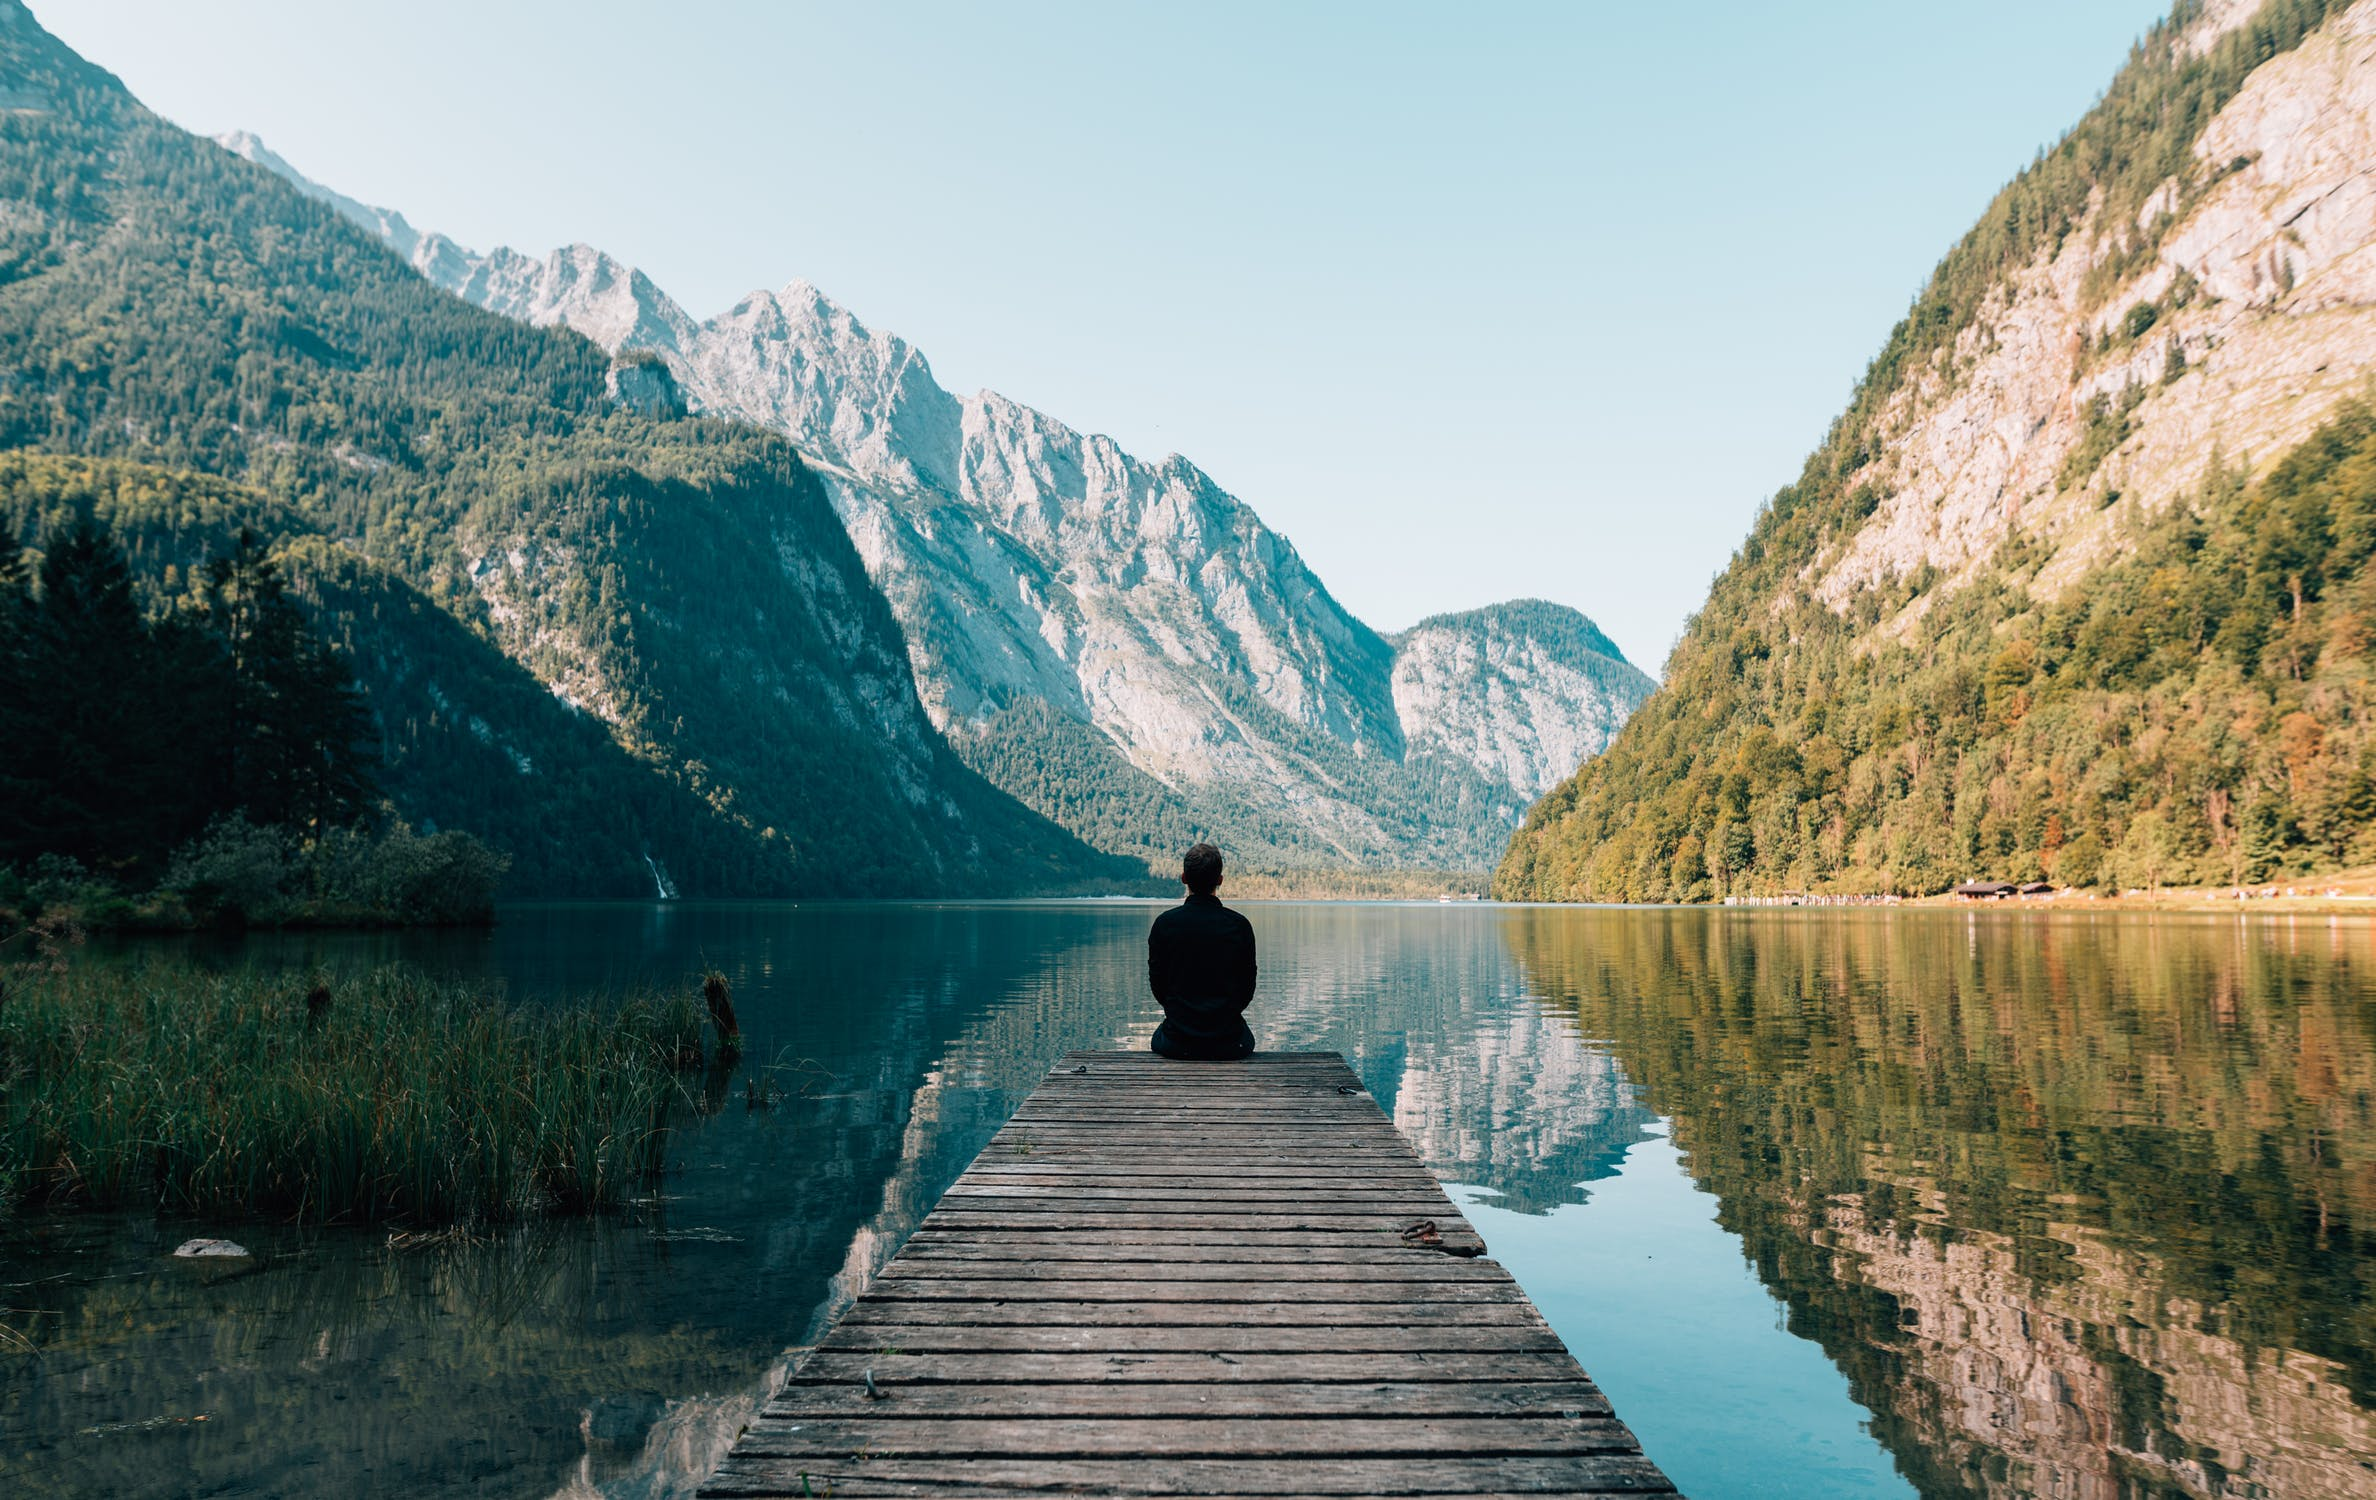 man sitting at the end of a doc on a lake reflecting on his life